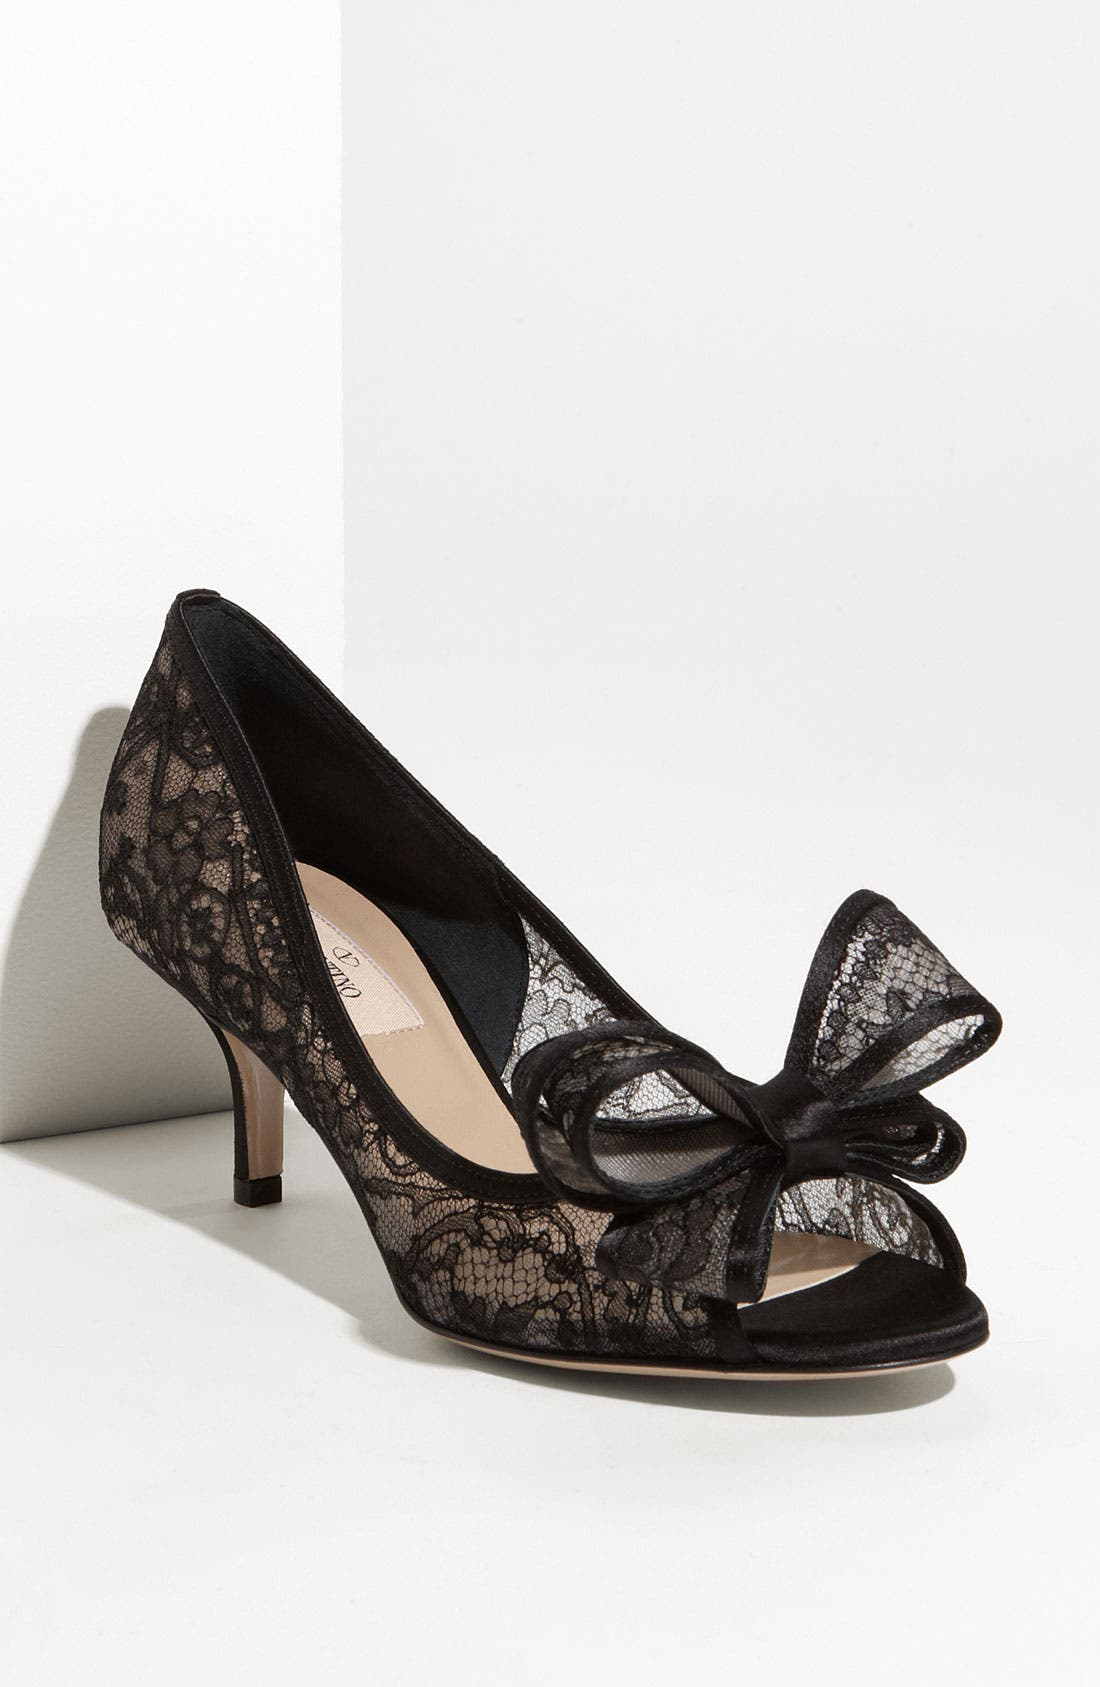 Alternate Image 1 Selected - VALENTINO GARAVANI Lace Couture Bow Pump